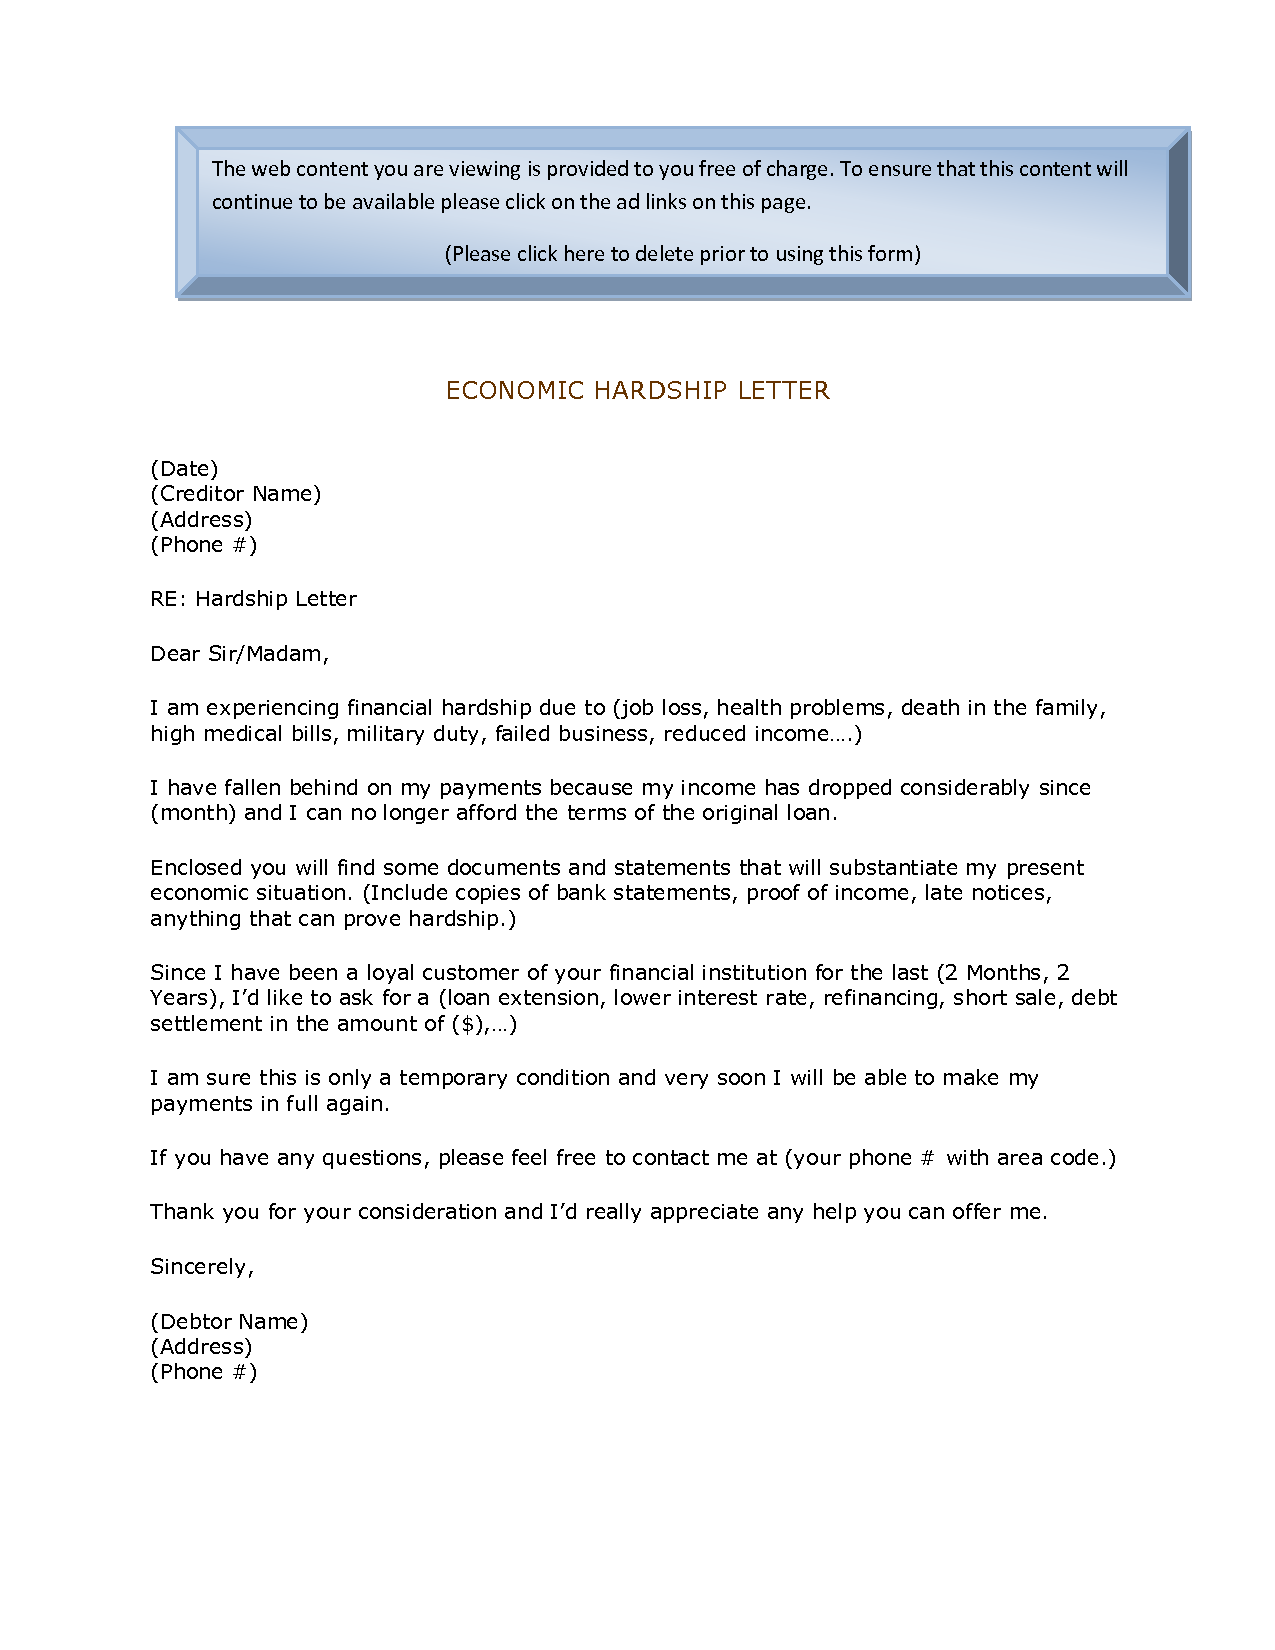 Economic Hardship Sample Letter | Economic Hardship Letter | 0775 ...